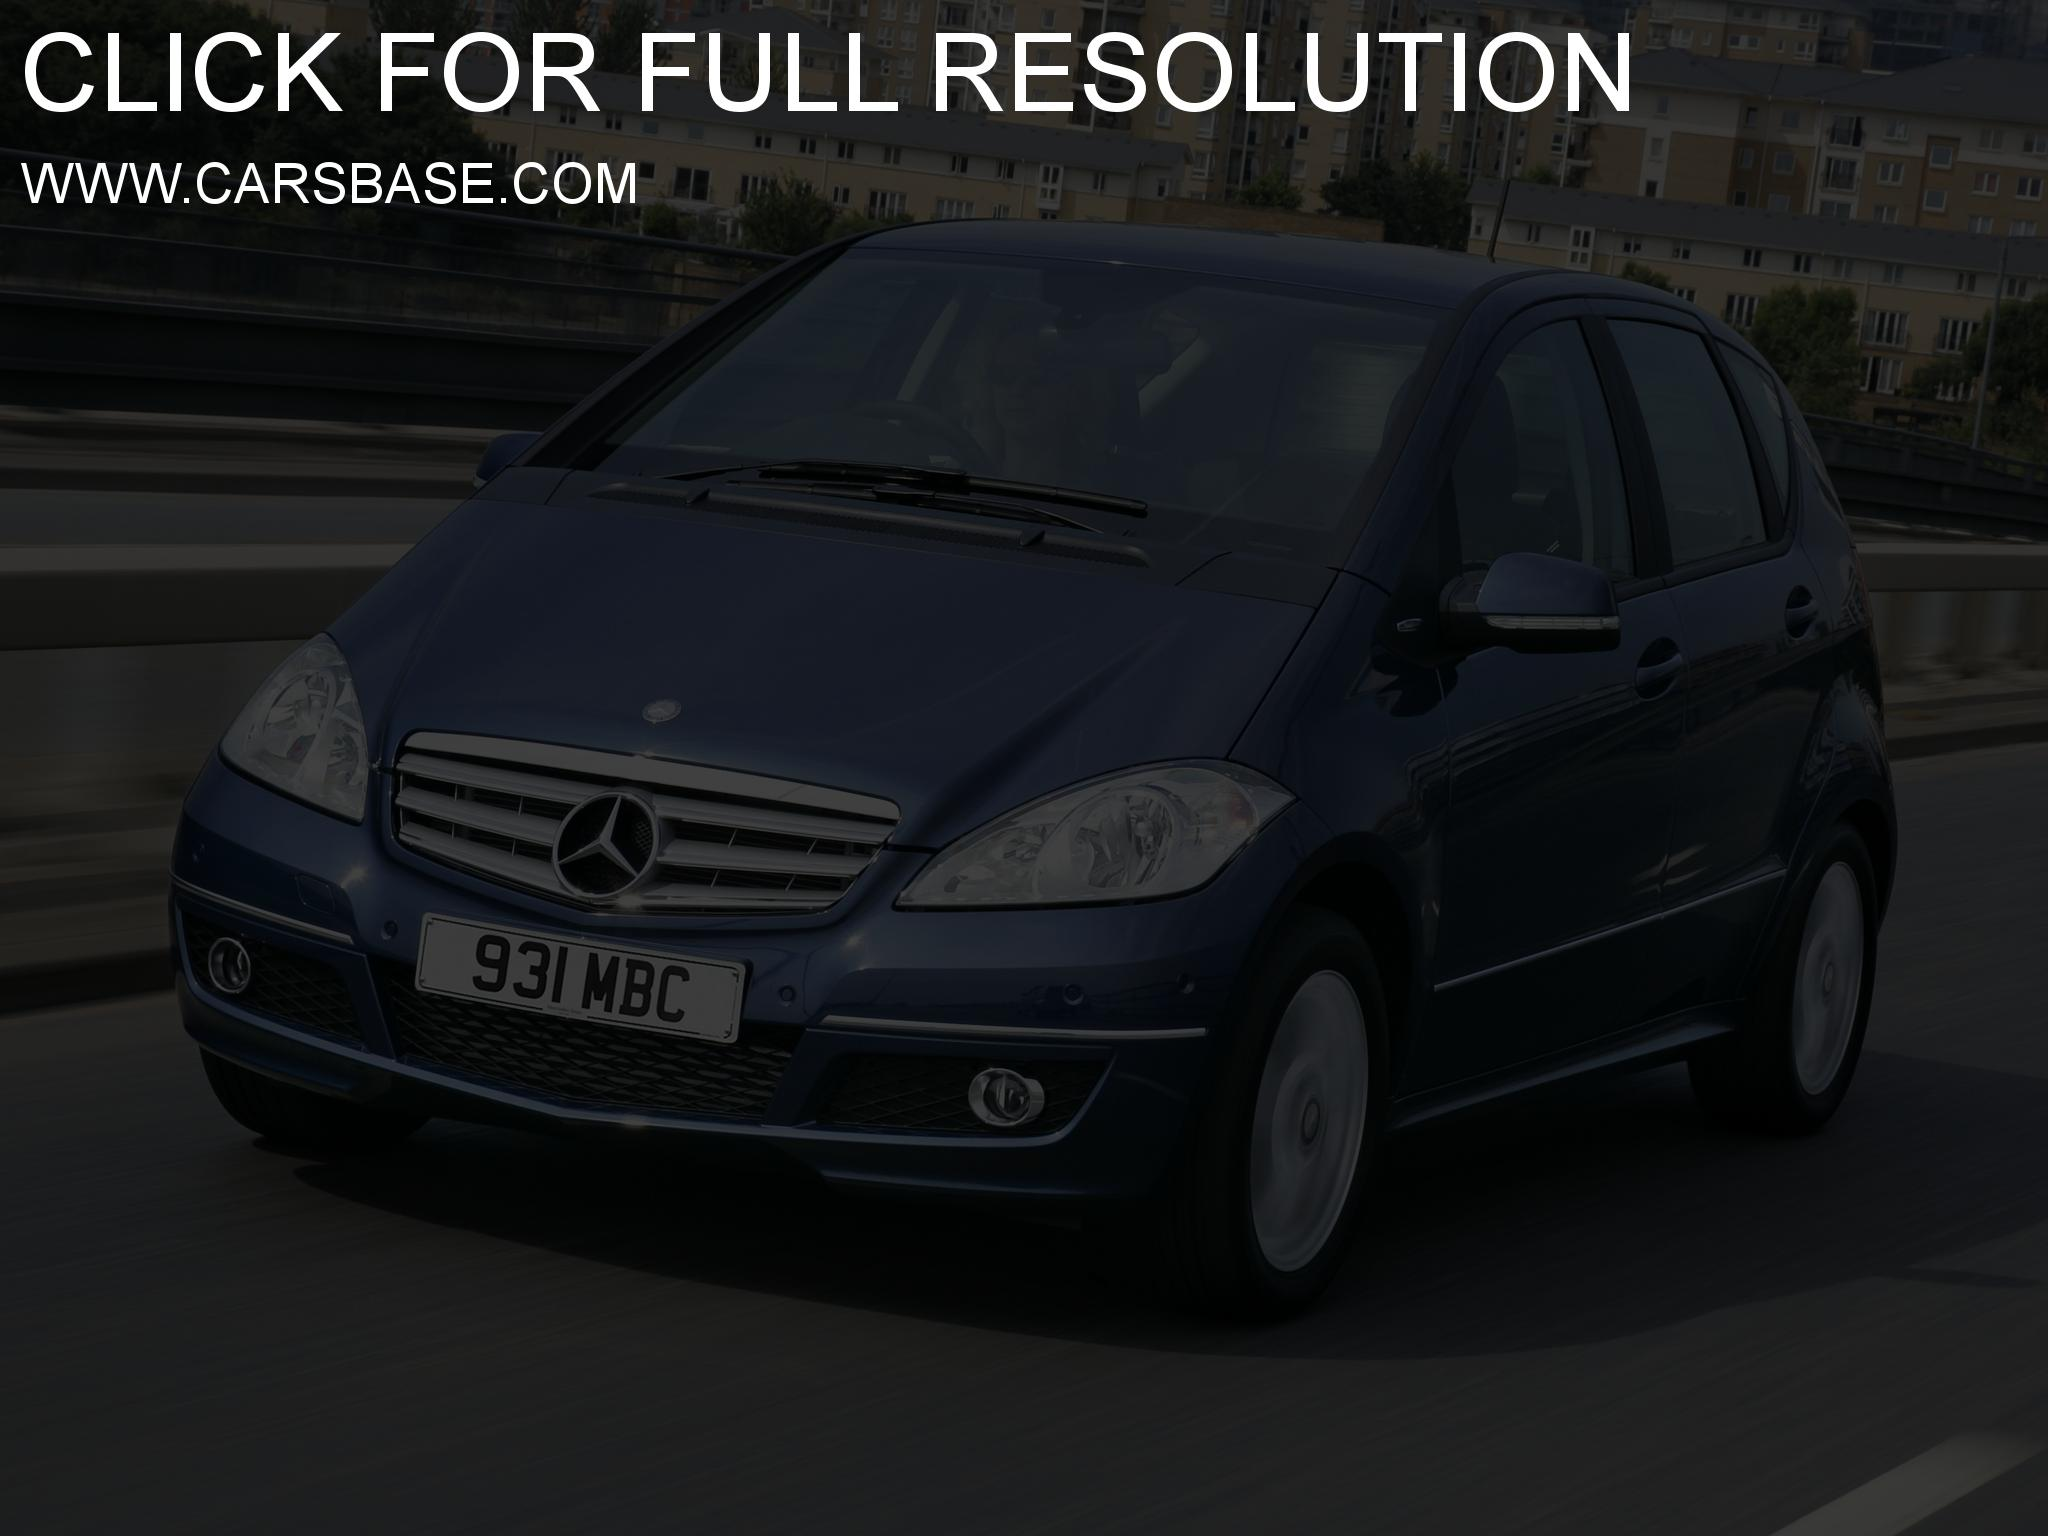 Mercedes-benz a180 photo - 3